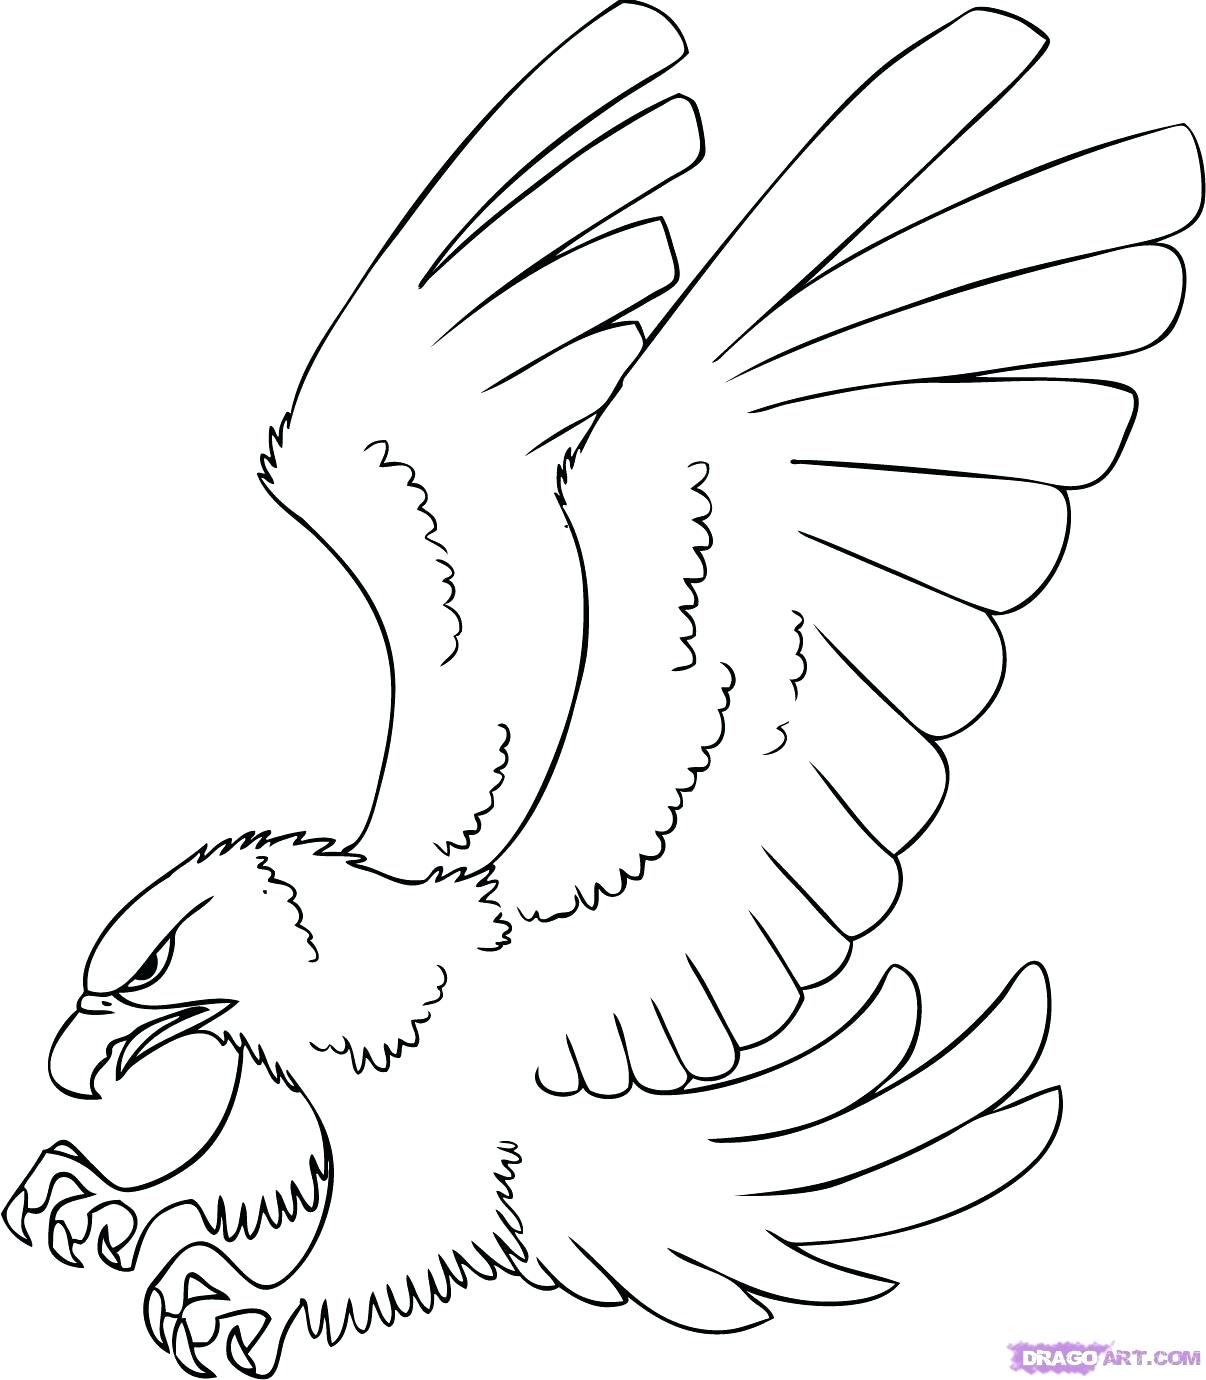 1206x1380 Coloring Red Tailed Hawk Coloring Page Draw A 2 Pictures. Red